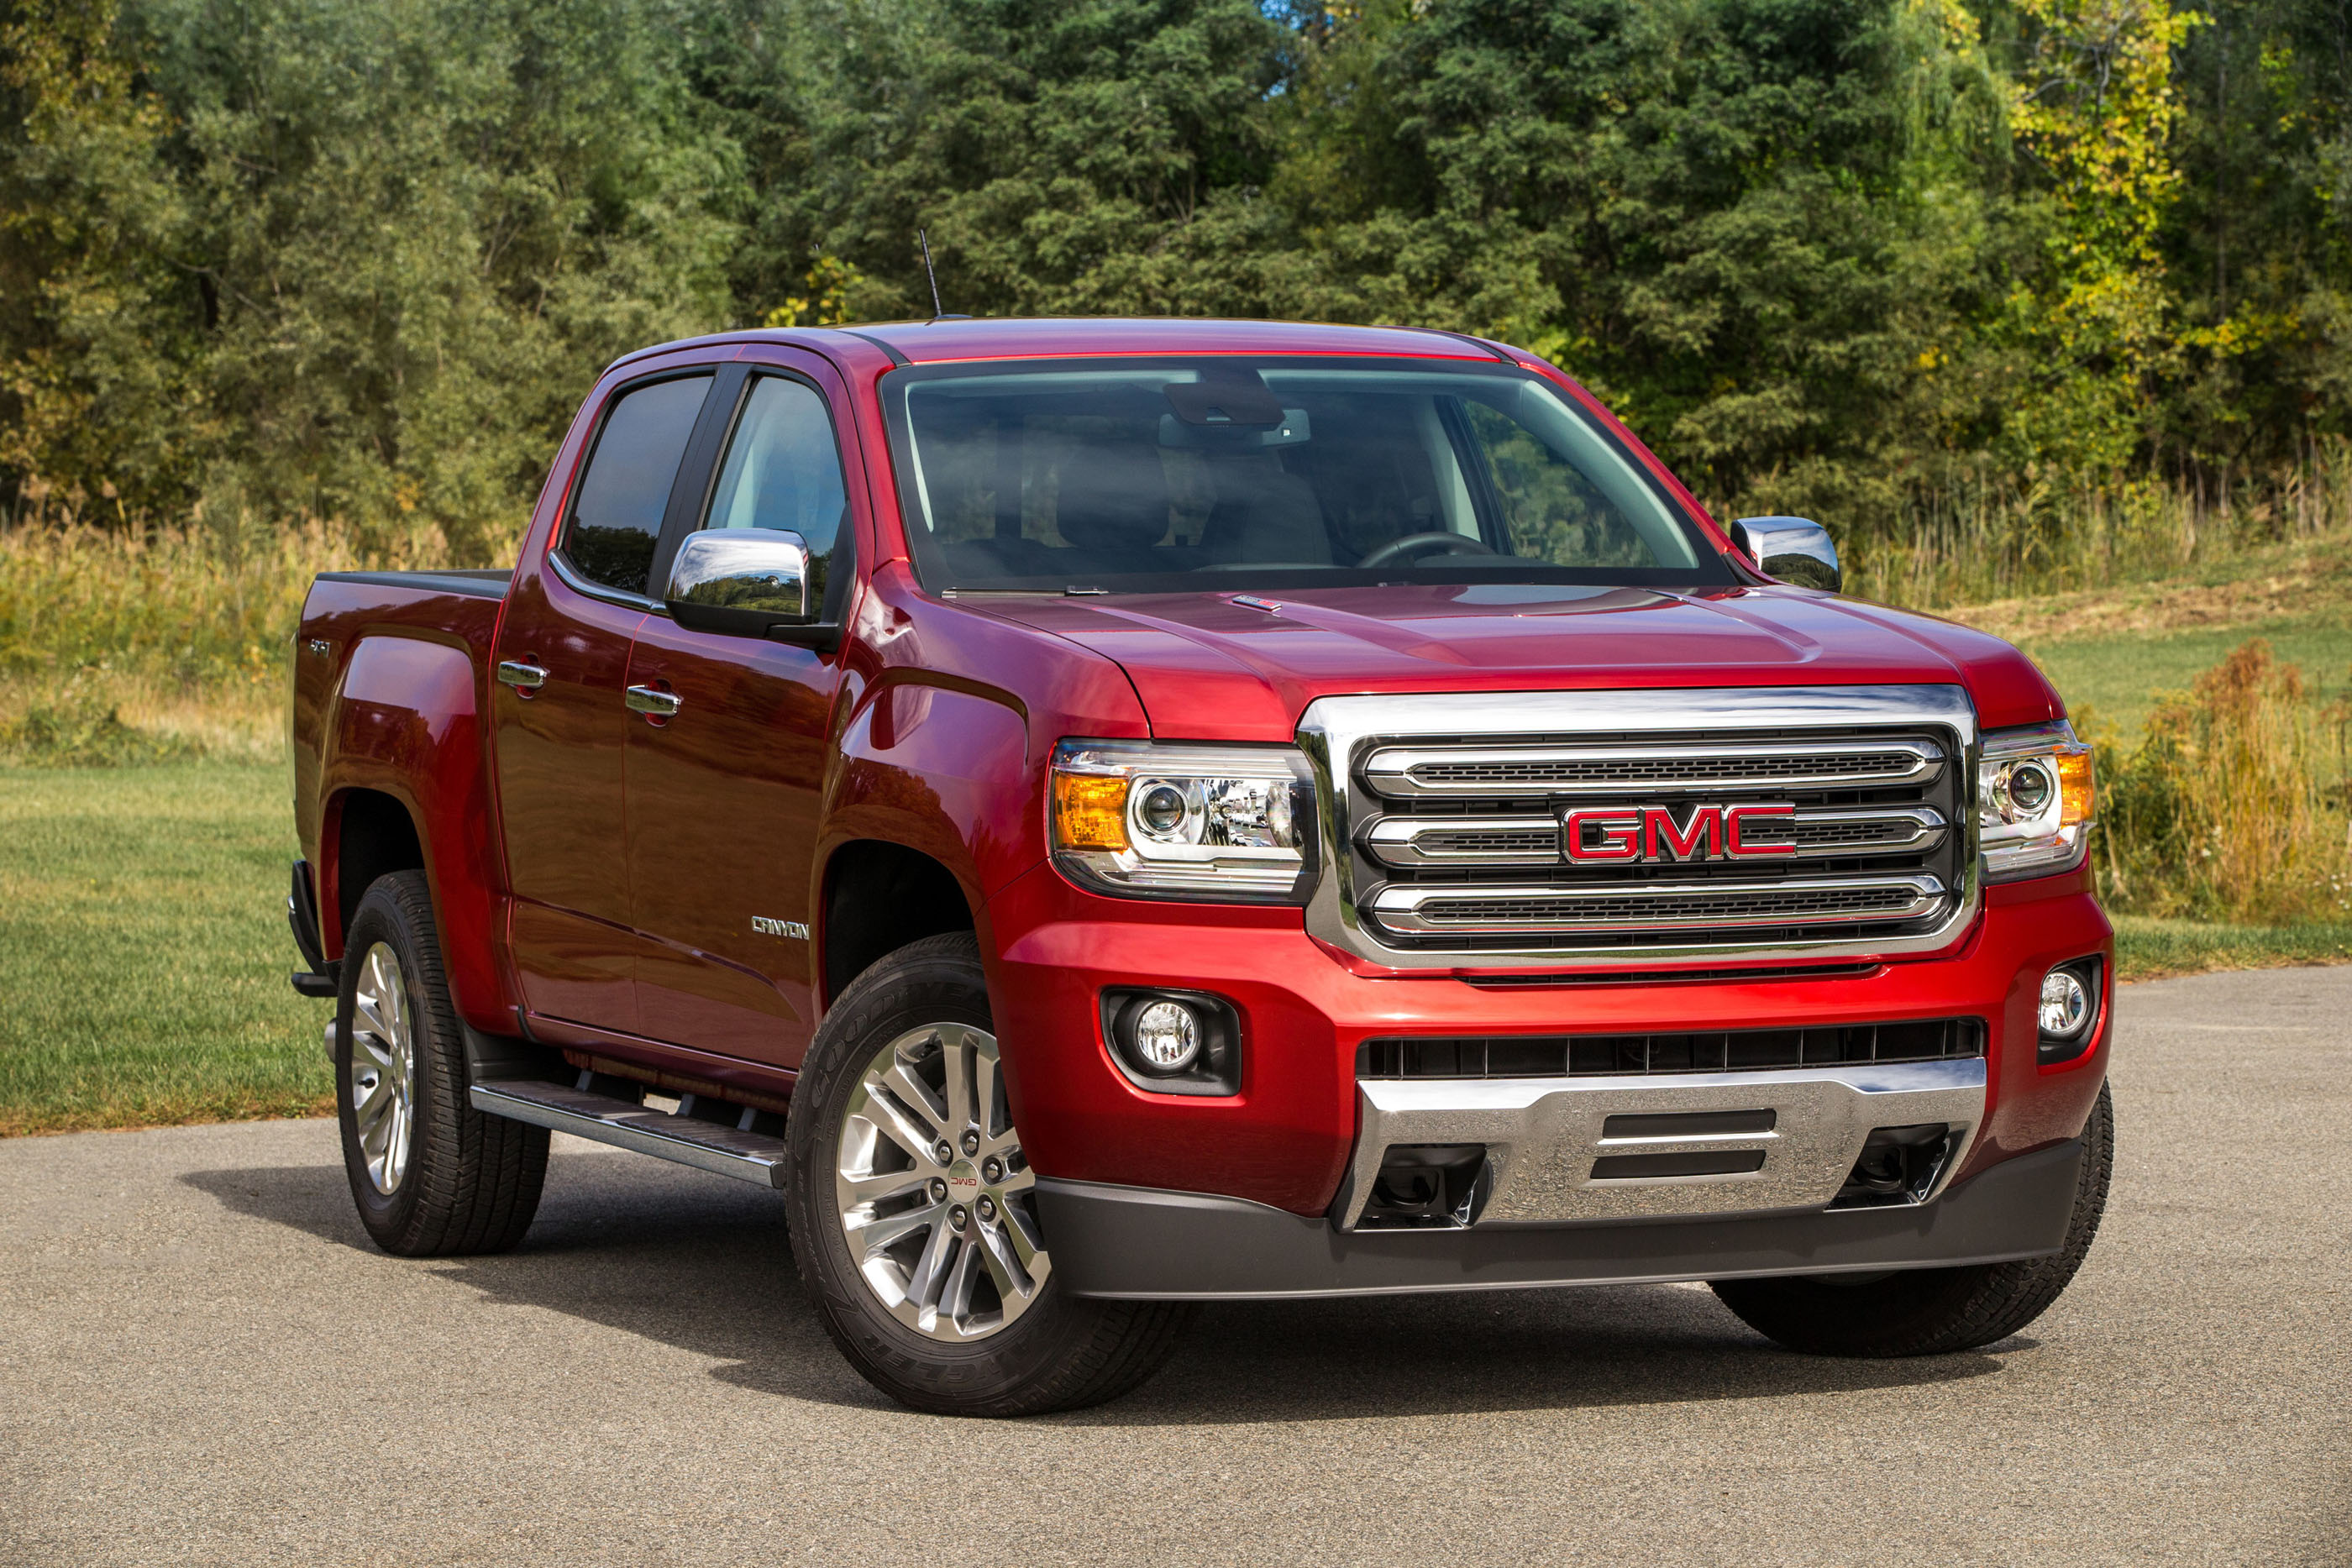 2017 Gmc Canyon Safety Review And Crash Test Ratings The